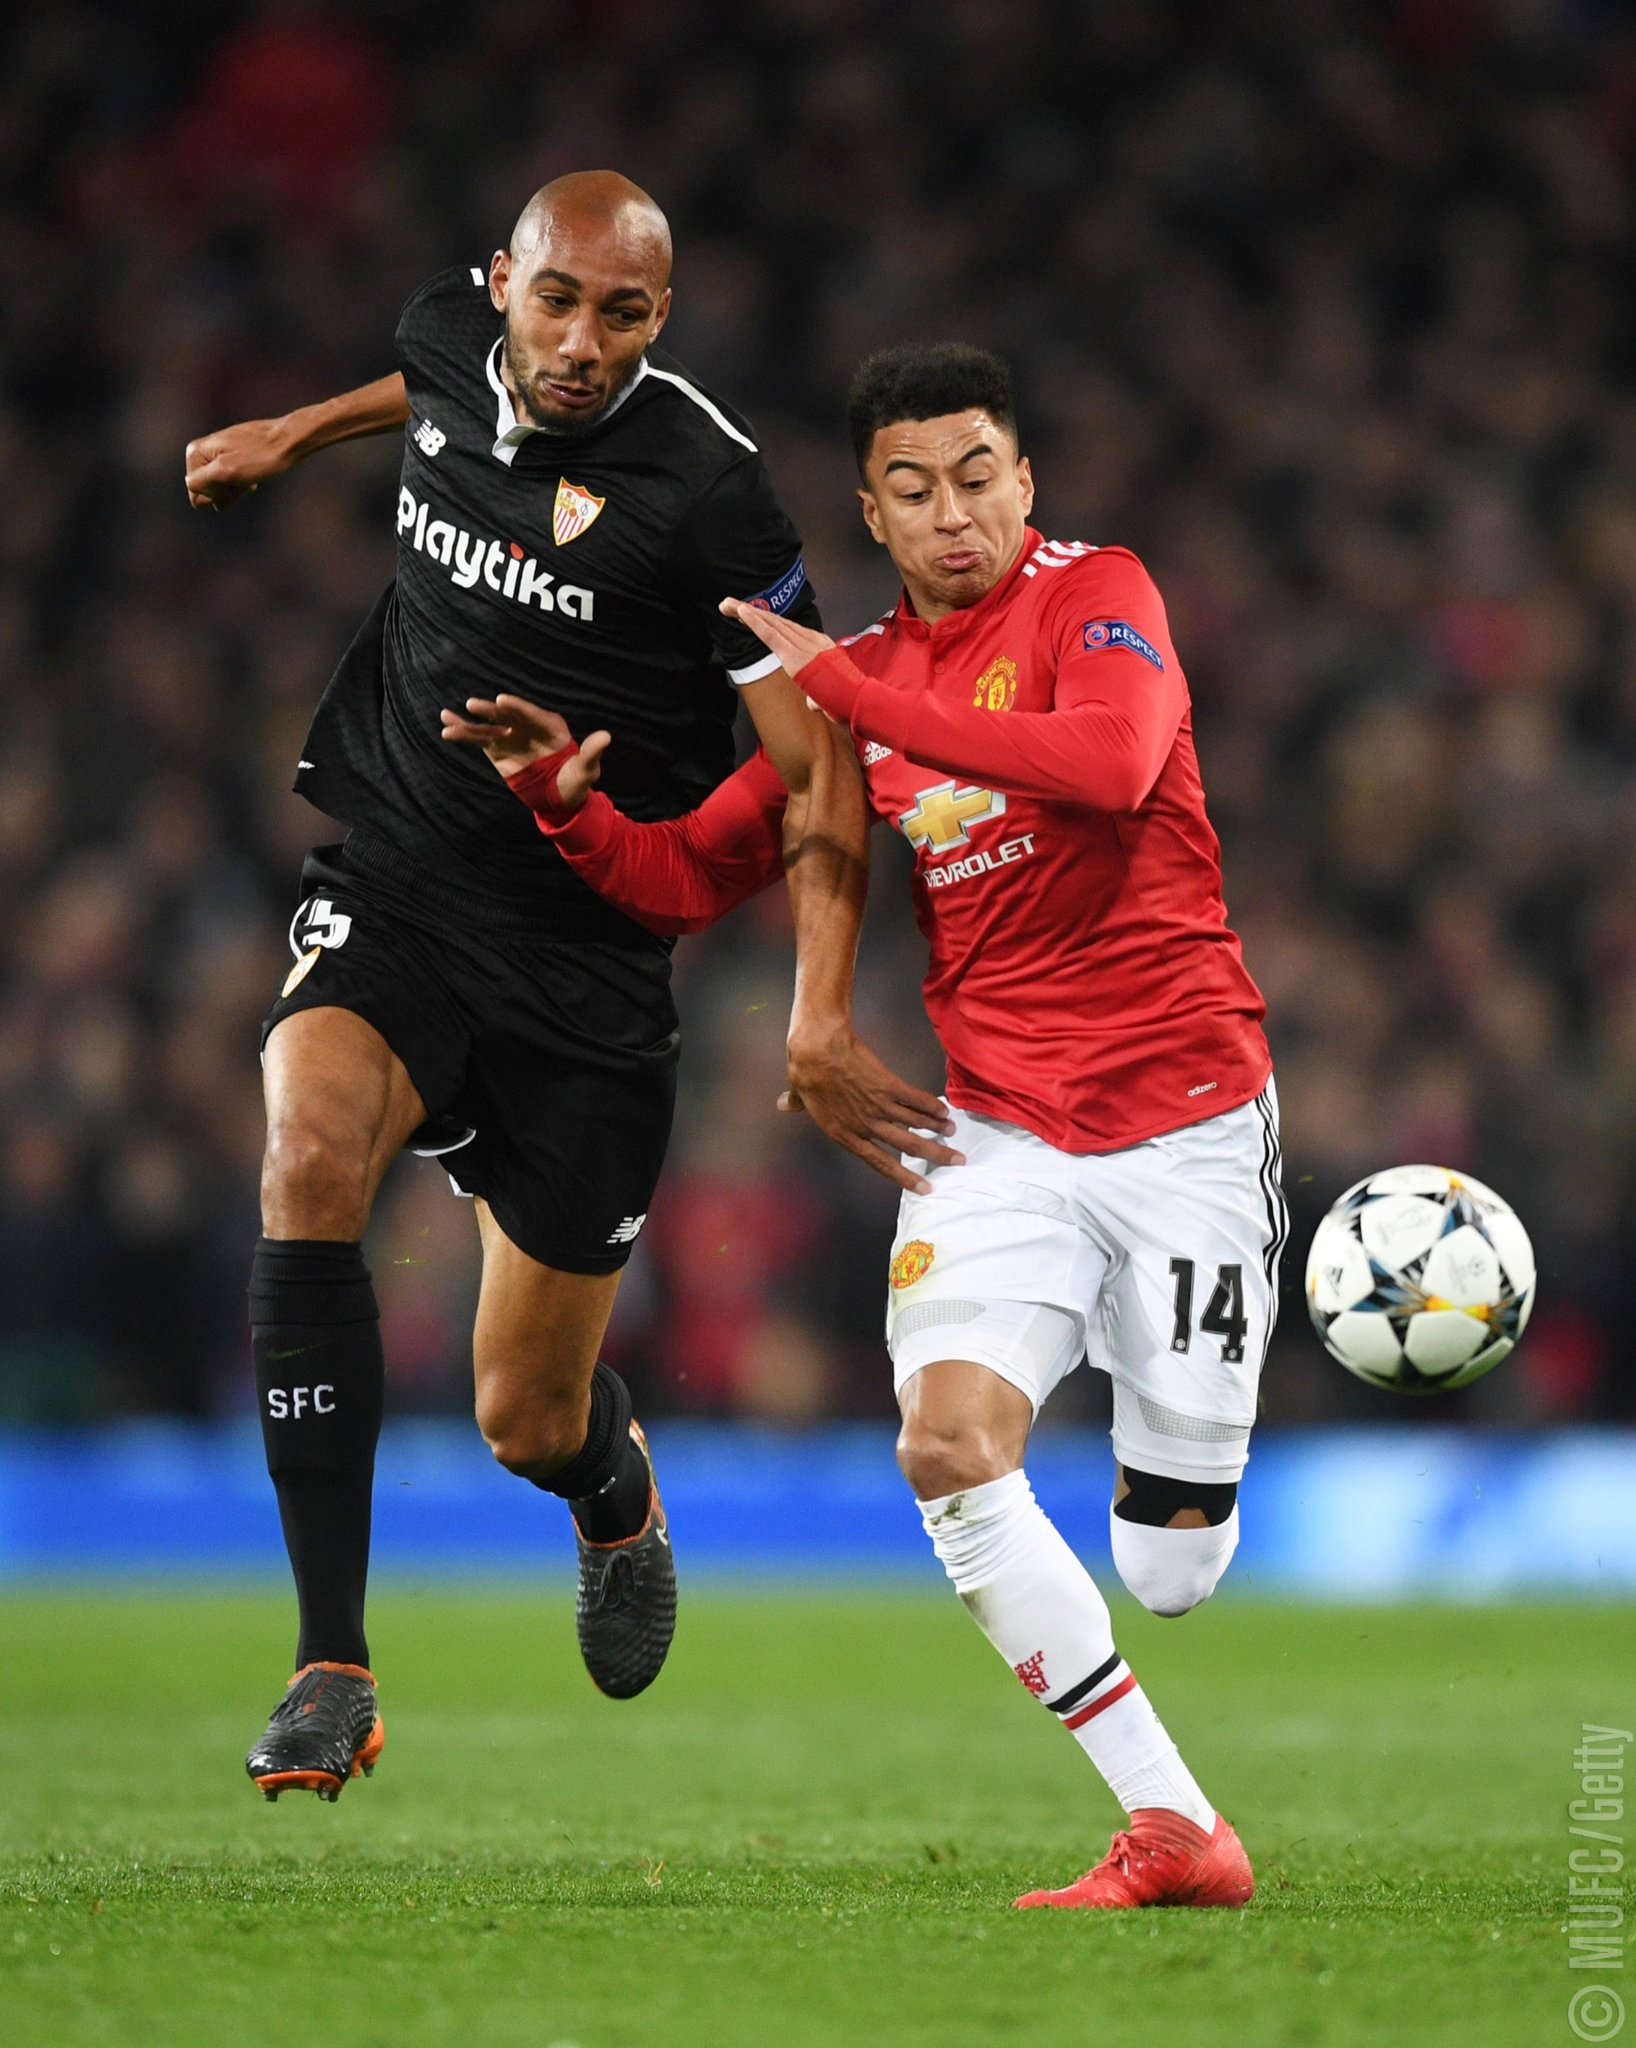 32' - @JesseLingard battles for possession with N'Zonzi. ��  #MUFC #UCL https://t.co/d7apTfnehR